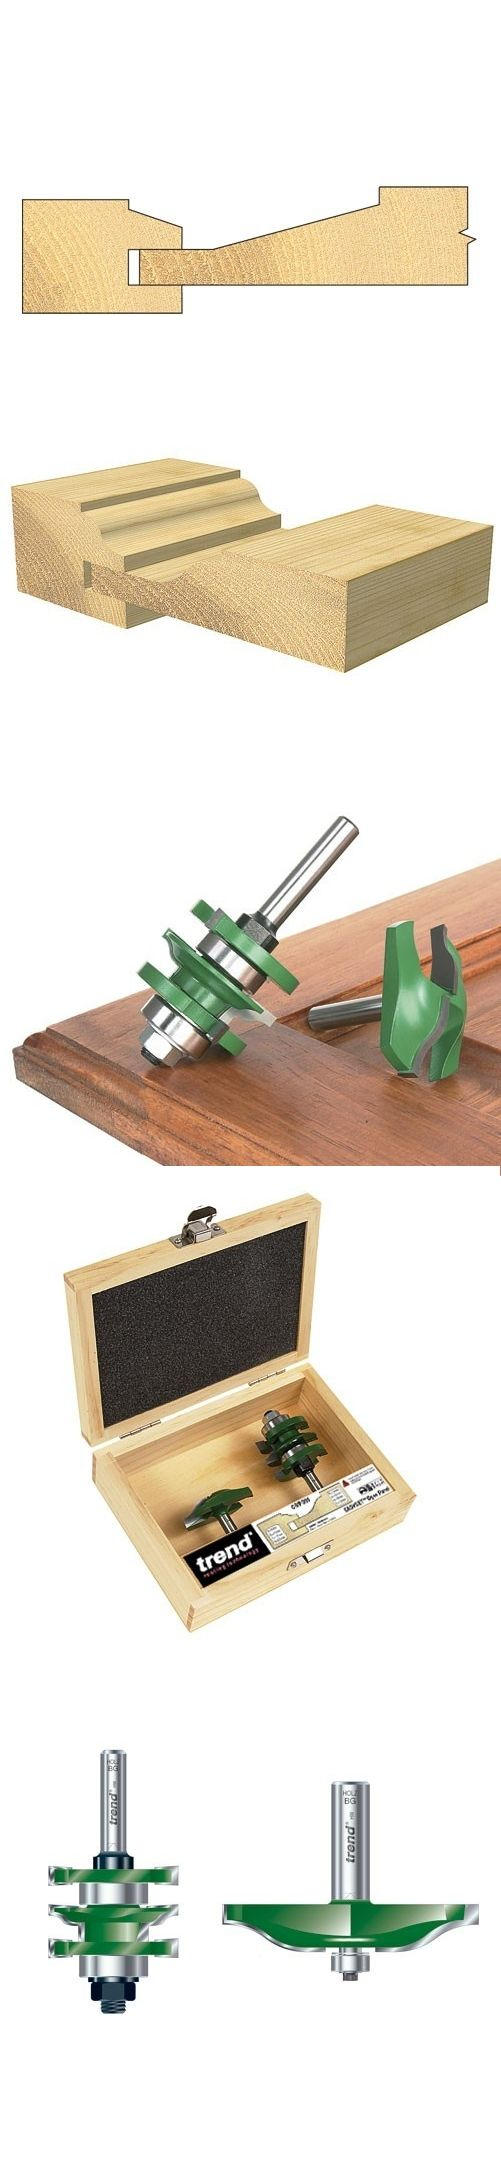 A panel door set consisting of a Easyset profile scriber and panel raiser cutter. Supplied in a storage case. #Panel #Door #Cutter Set Ogee Large... http://www.woodfordtooling.com/craftpro-router-cutters/panel-door-sets/panel-door-set-large-ogee/panel-door-set-ogee-large-664.html